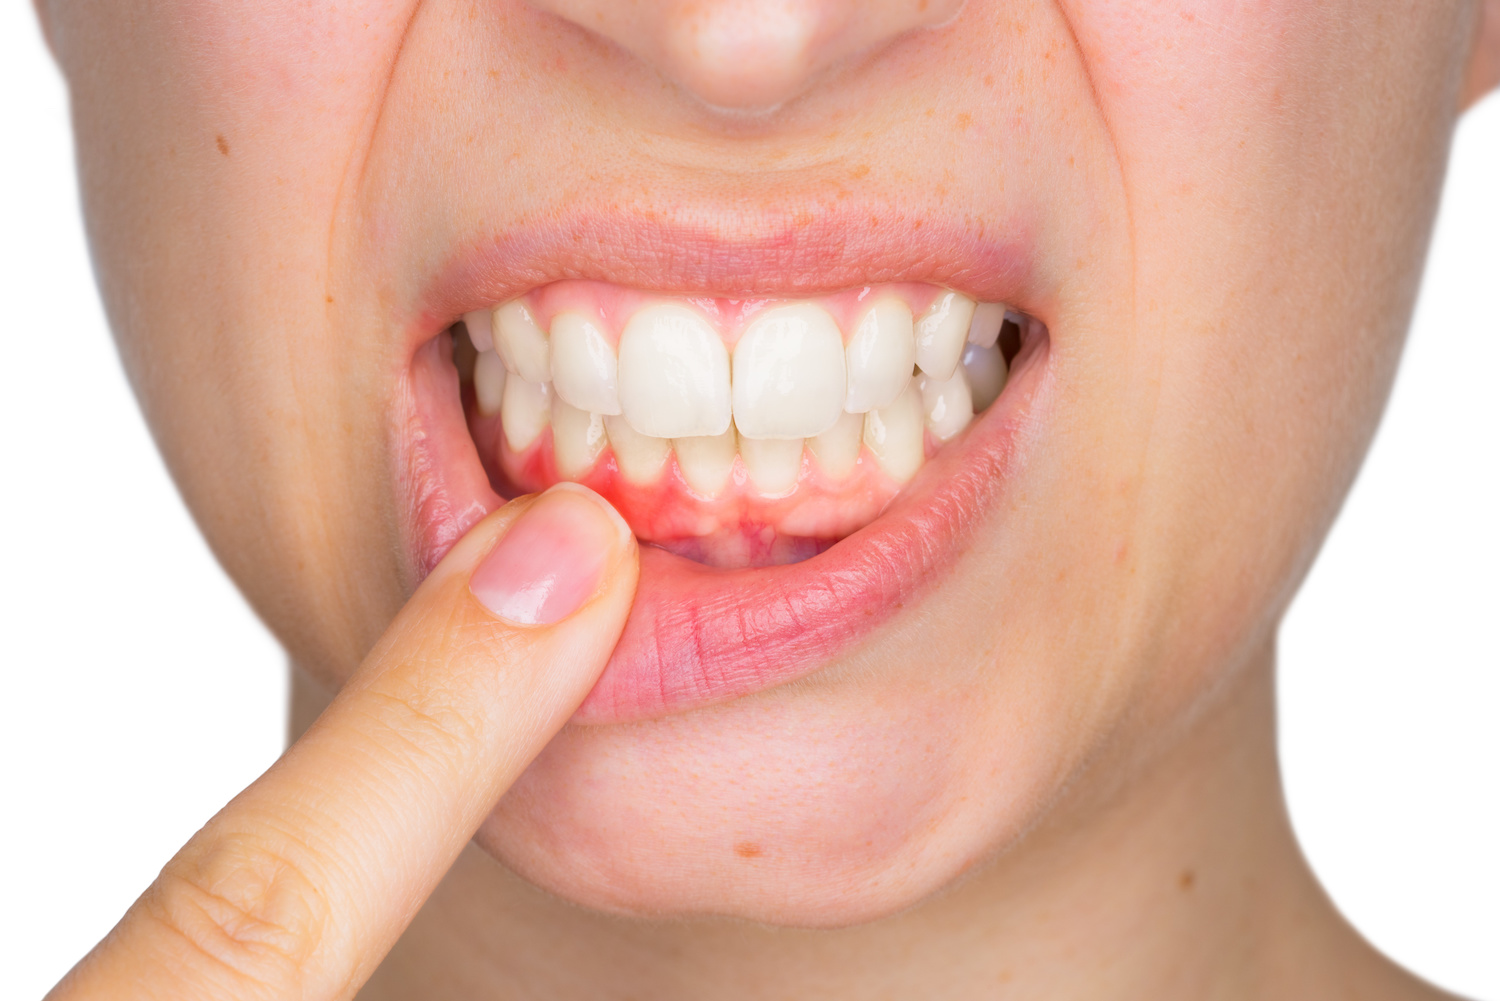 Sores On Gums: How To Treat Them Quickly